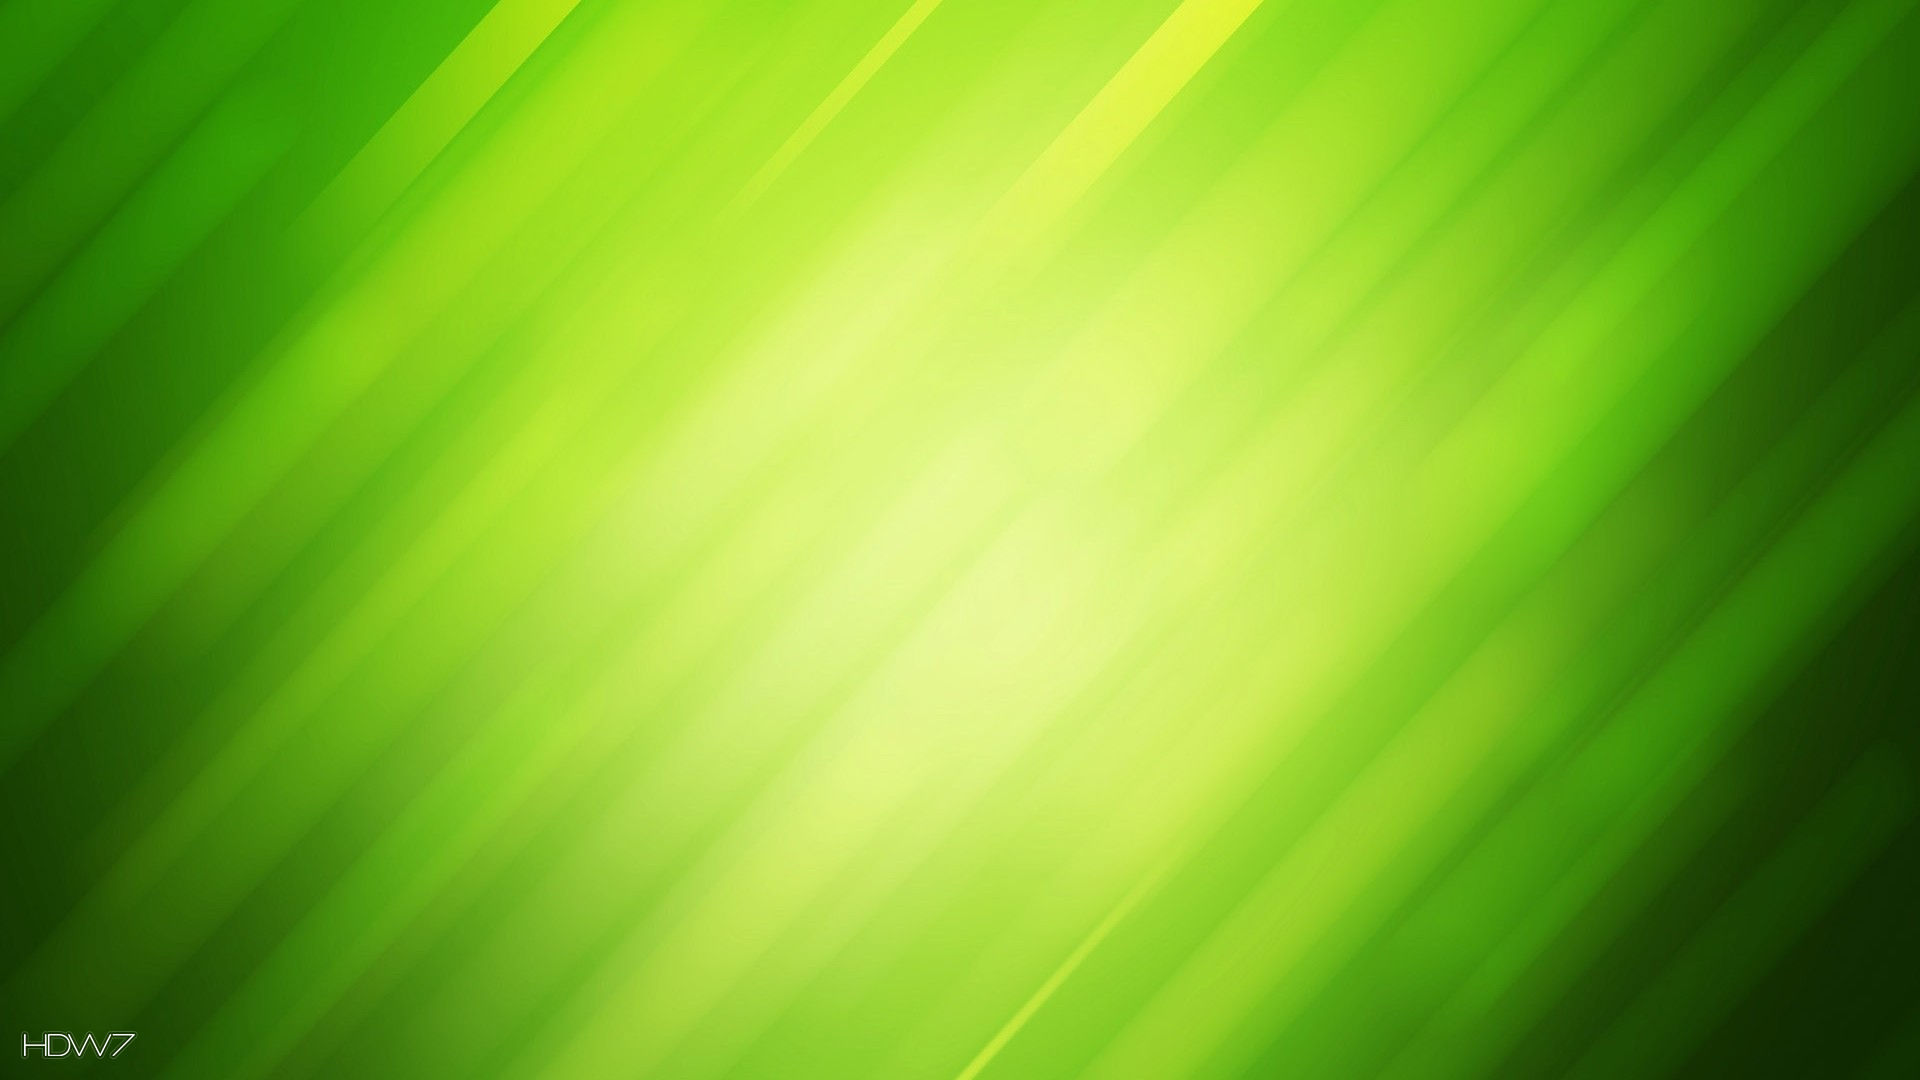 green abstract hd wallpaper 1080p | HD wallpaper gallery #342